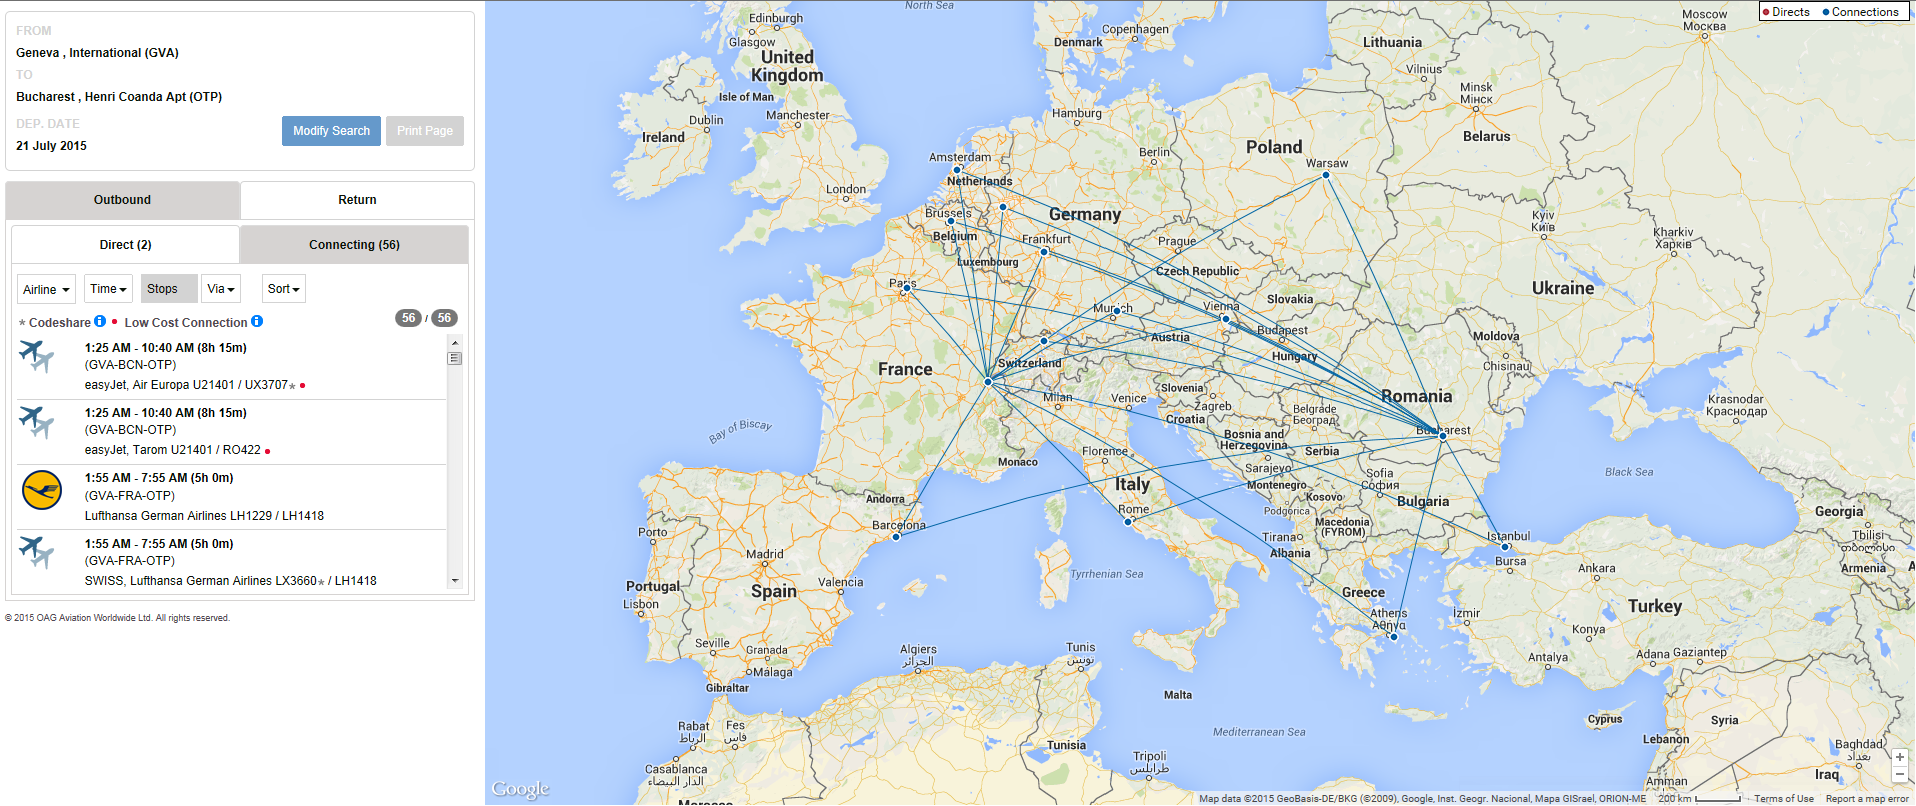 geneva_to_bucharest_route_mapperpng